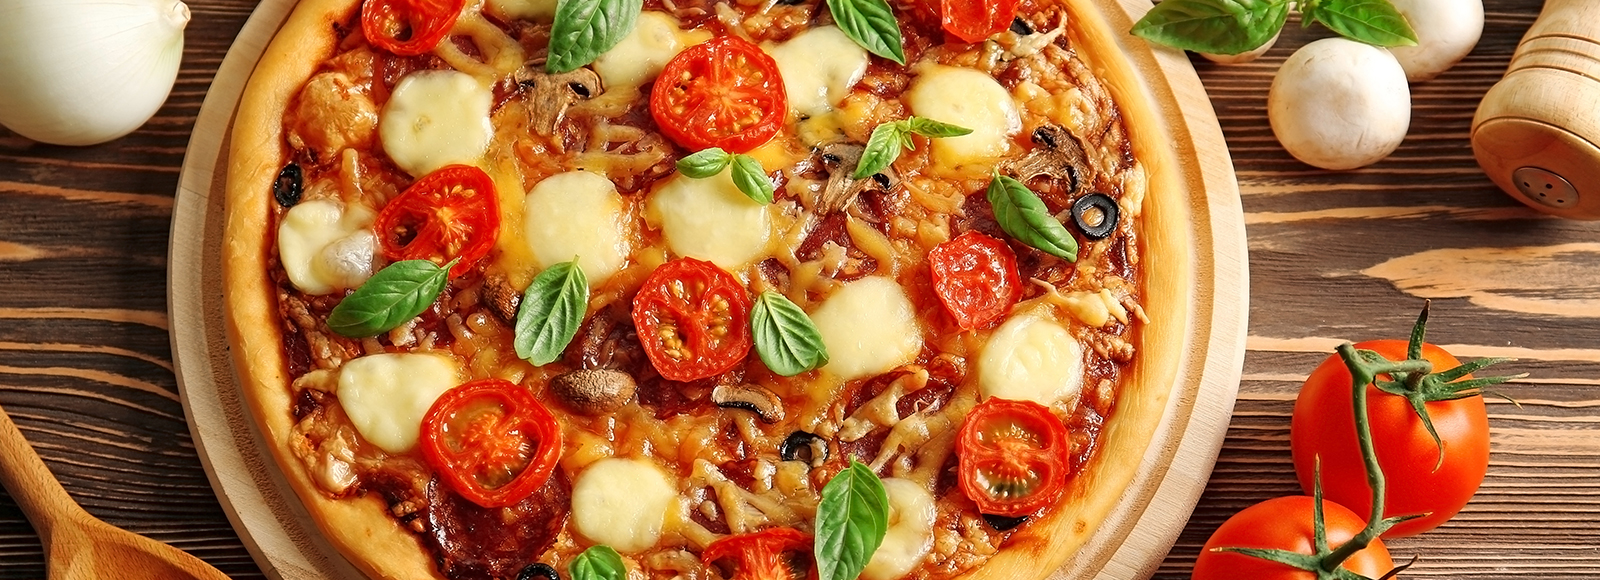 Pizza King Pizza King Houghton Le Spring Houghton Le